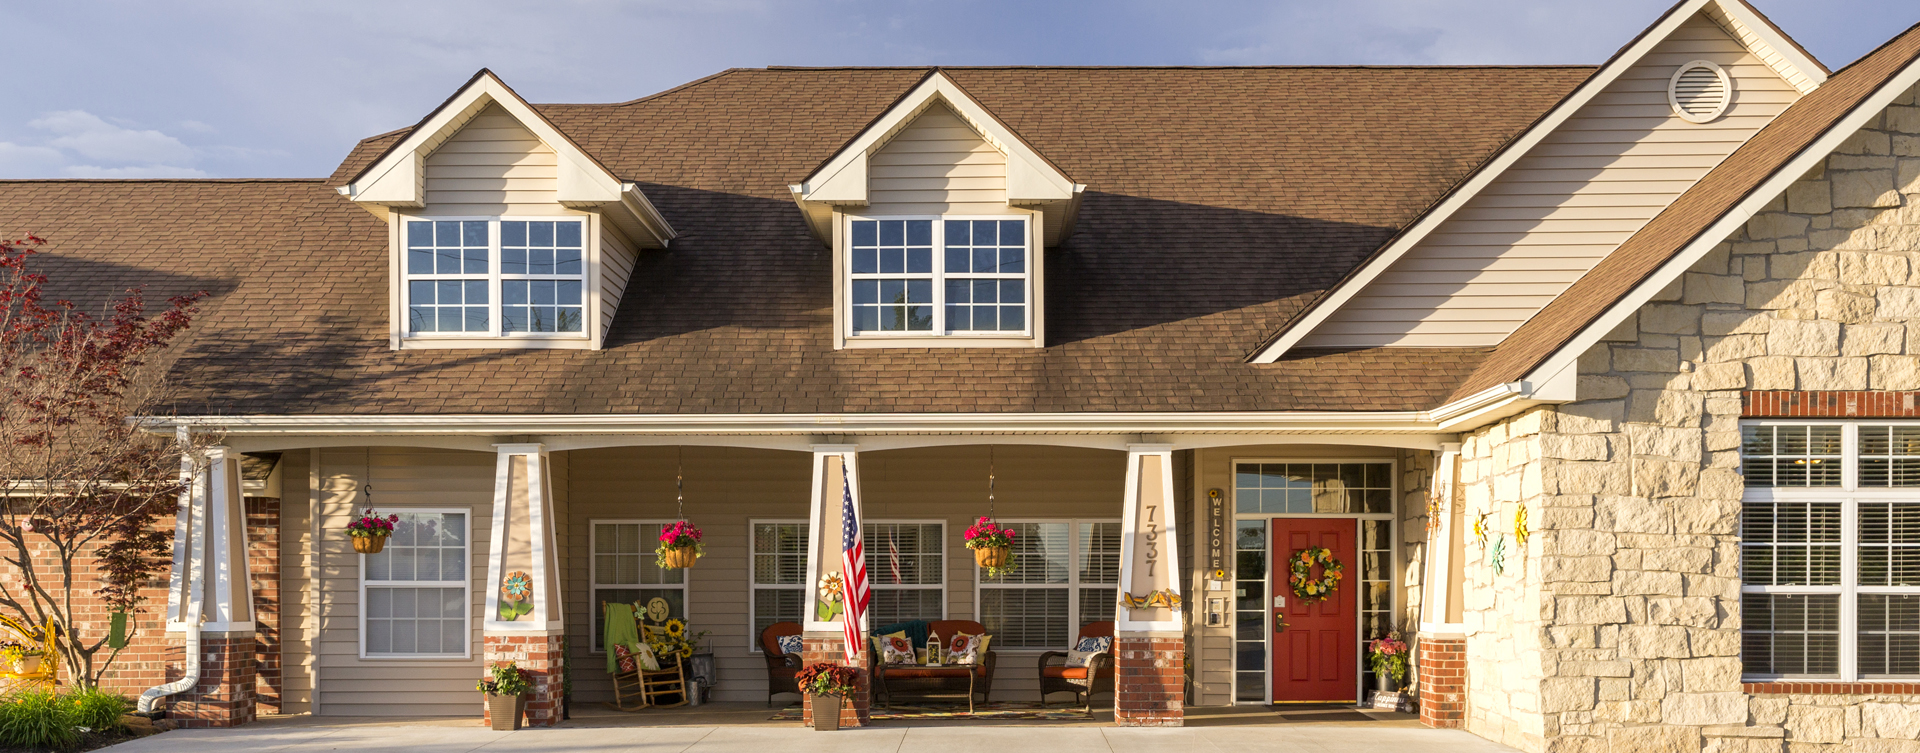 Stop by and visit us at  Bickford of Omaha - Hickory